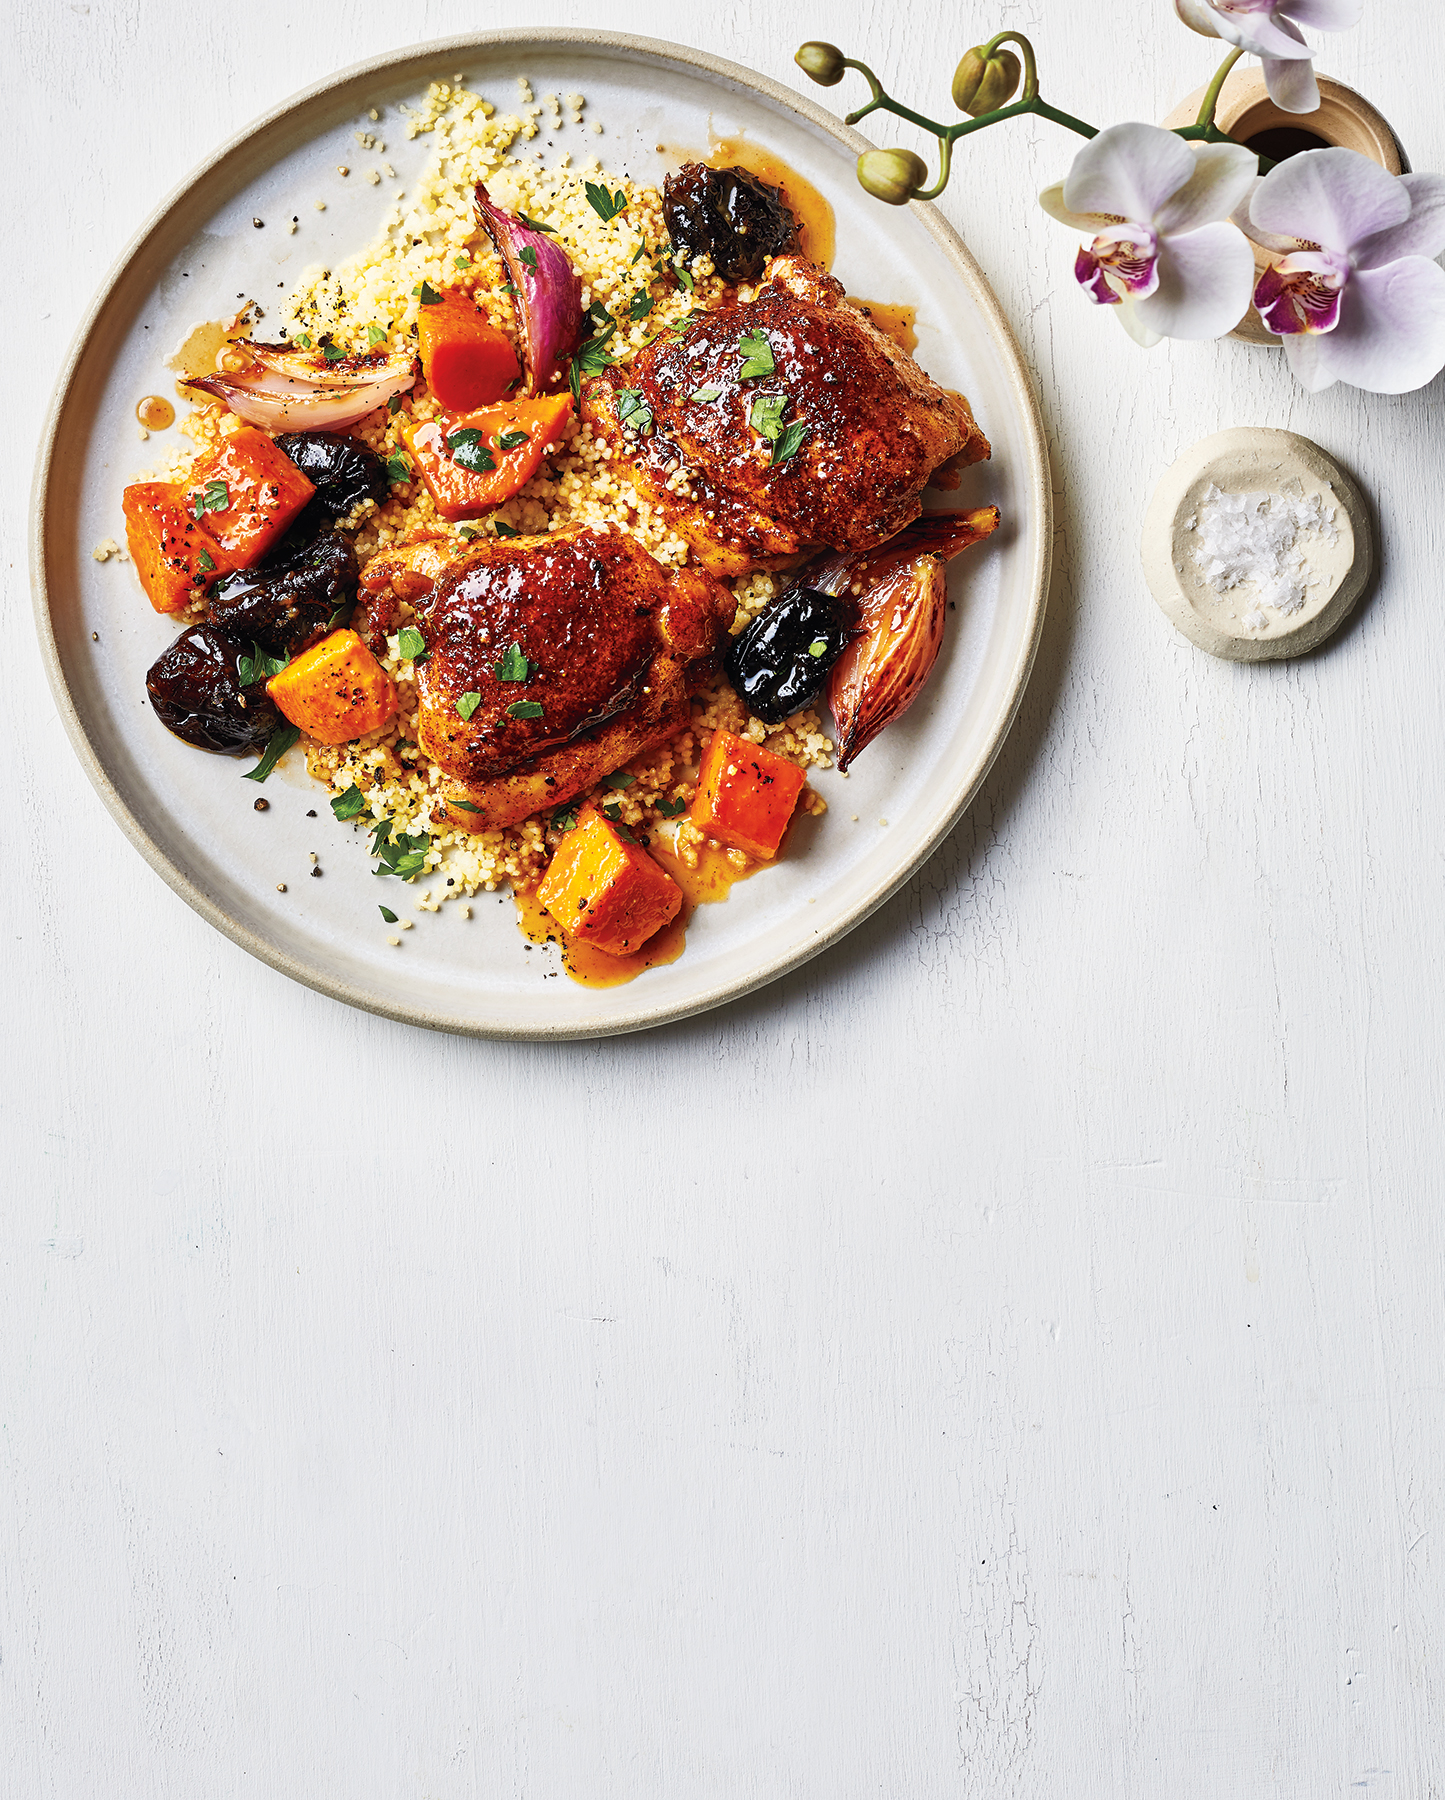 Boneless Chicken Thighs Recipe: Chicken Thighs With Sweet Potatoes and Prunes